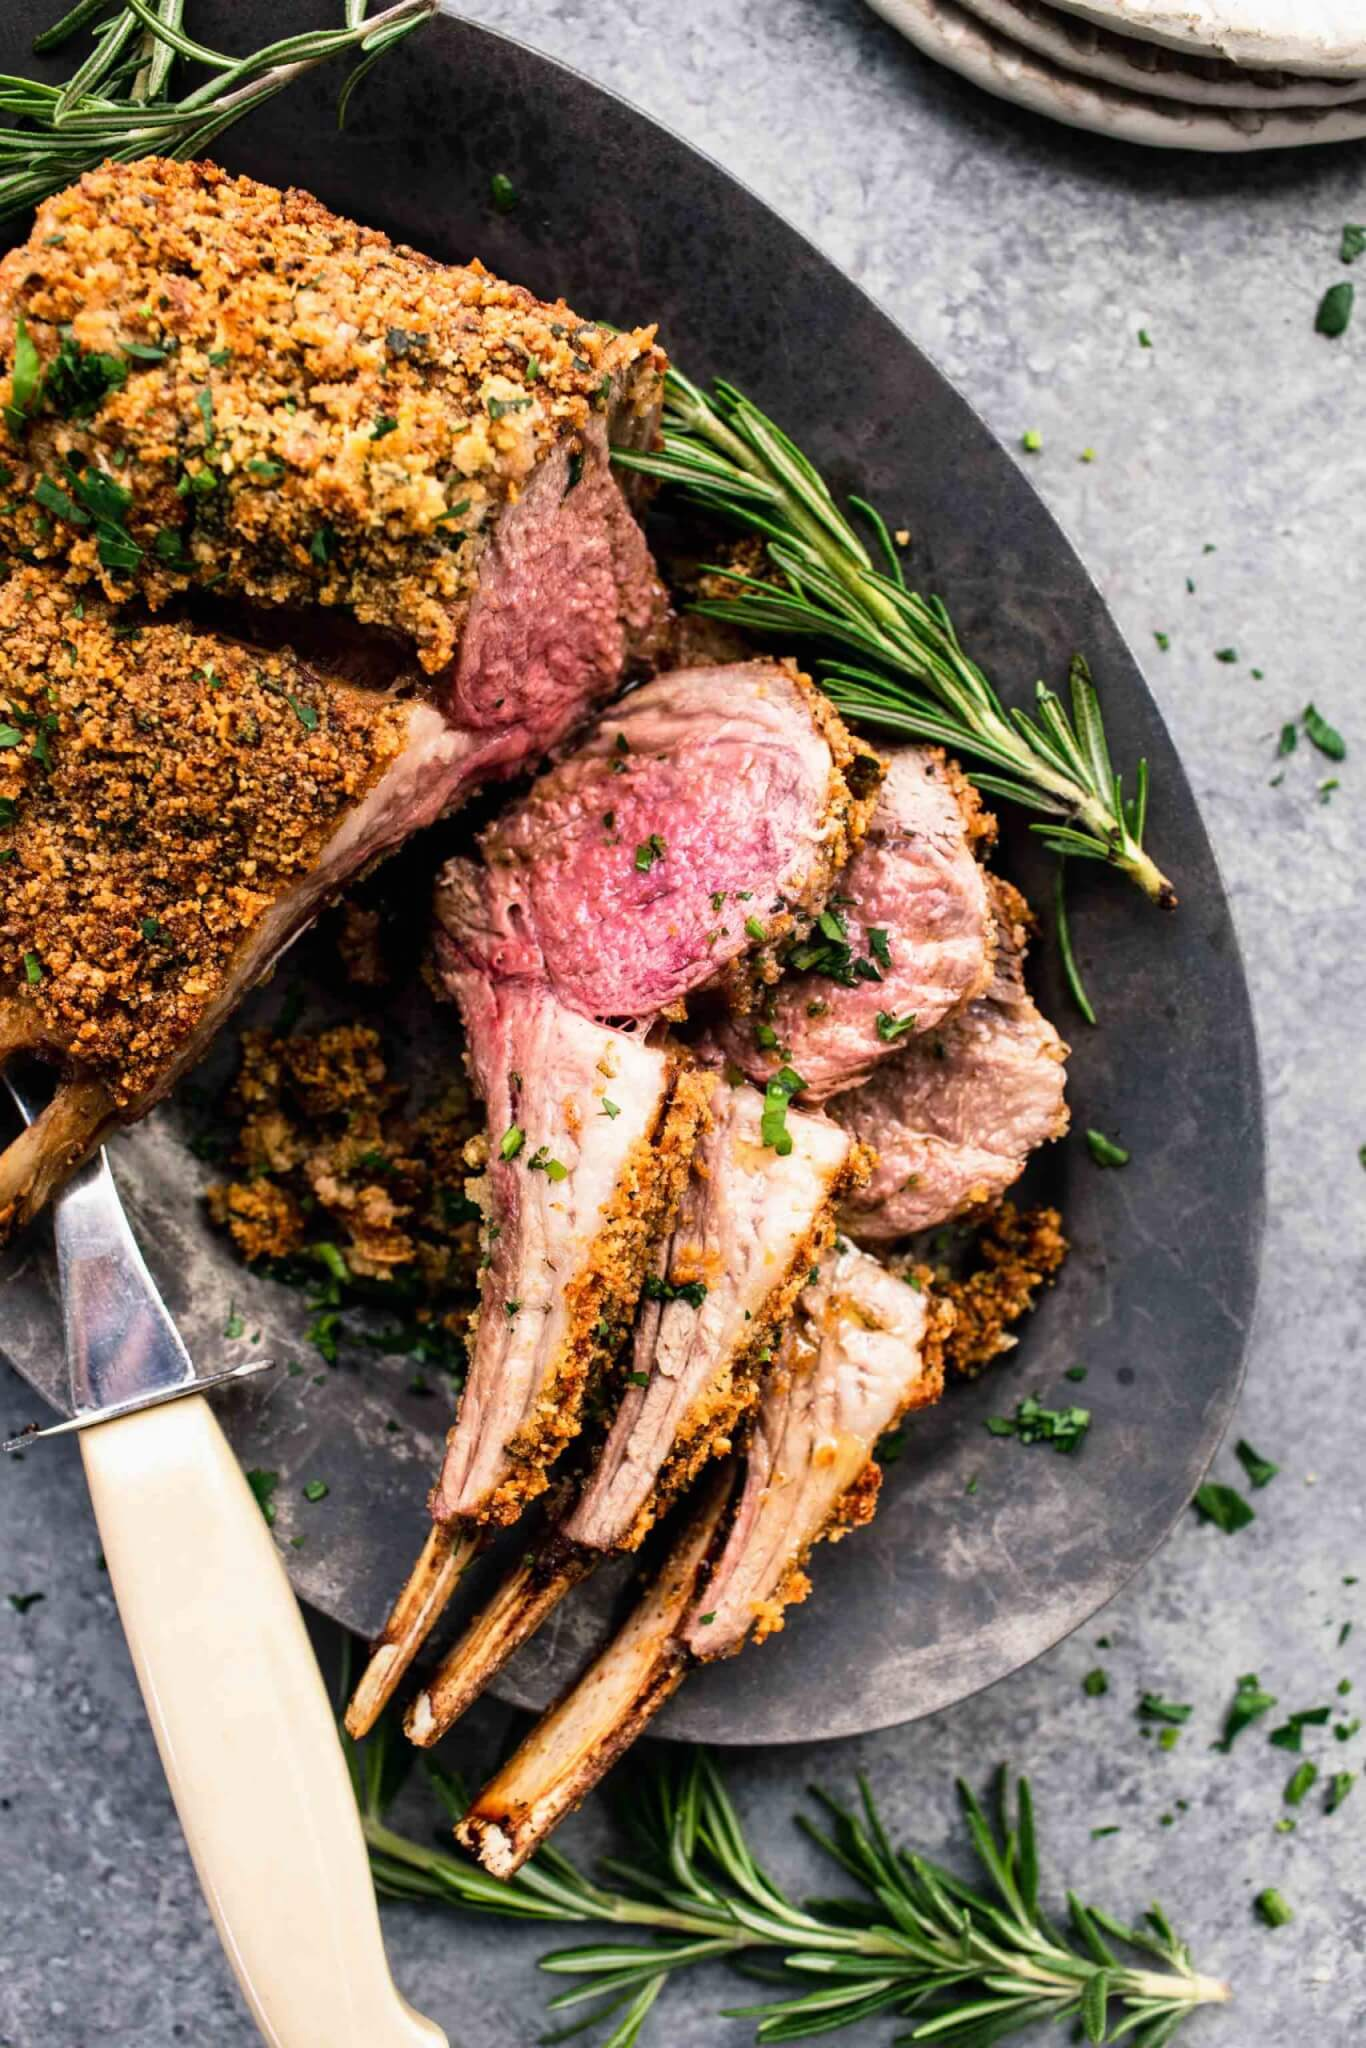 Herb crusted rack of lamb on grey serving platter with three chops sliced off.